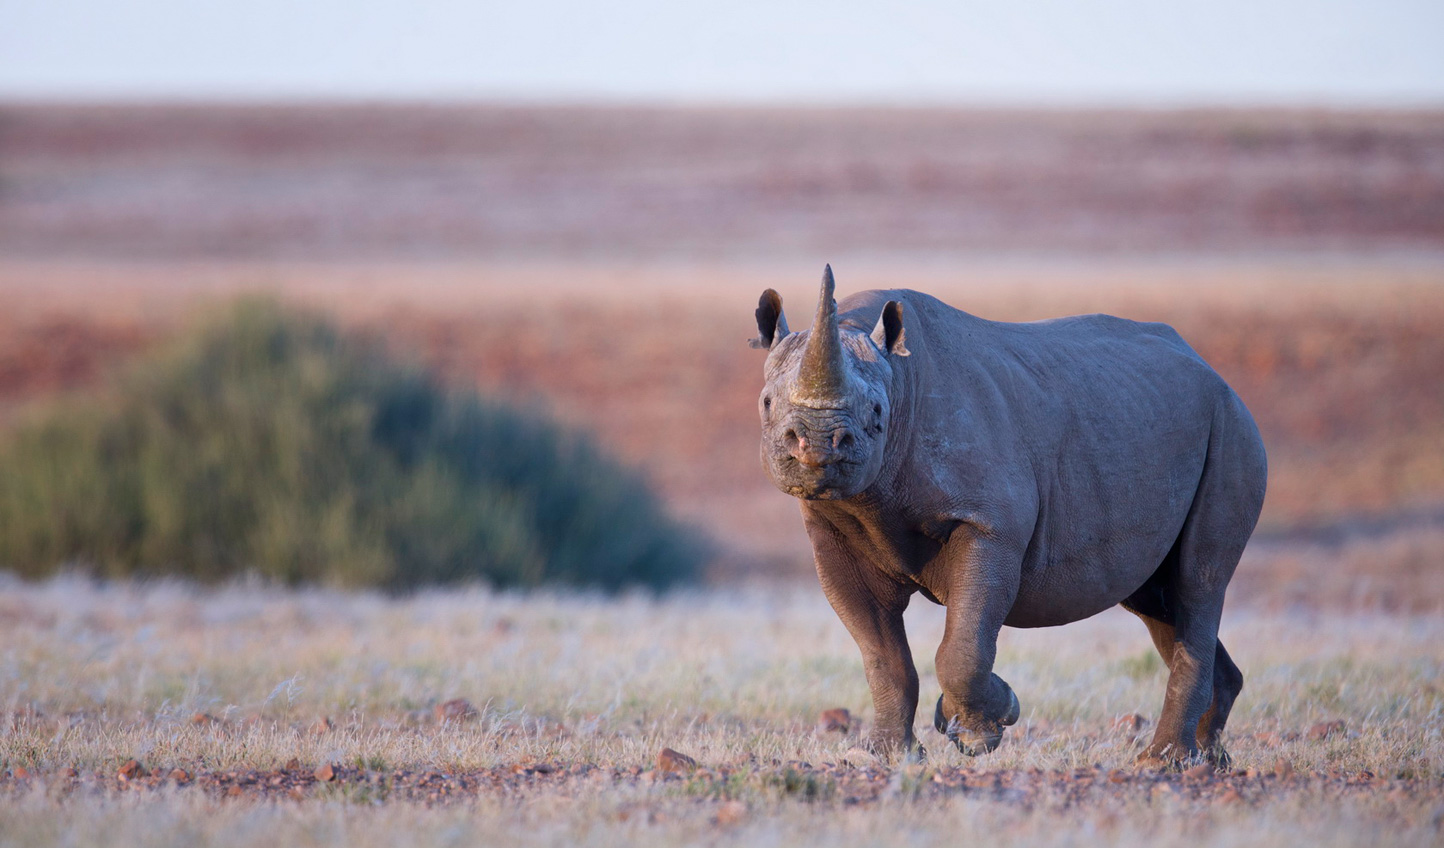 Track rare rhinos across the desert